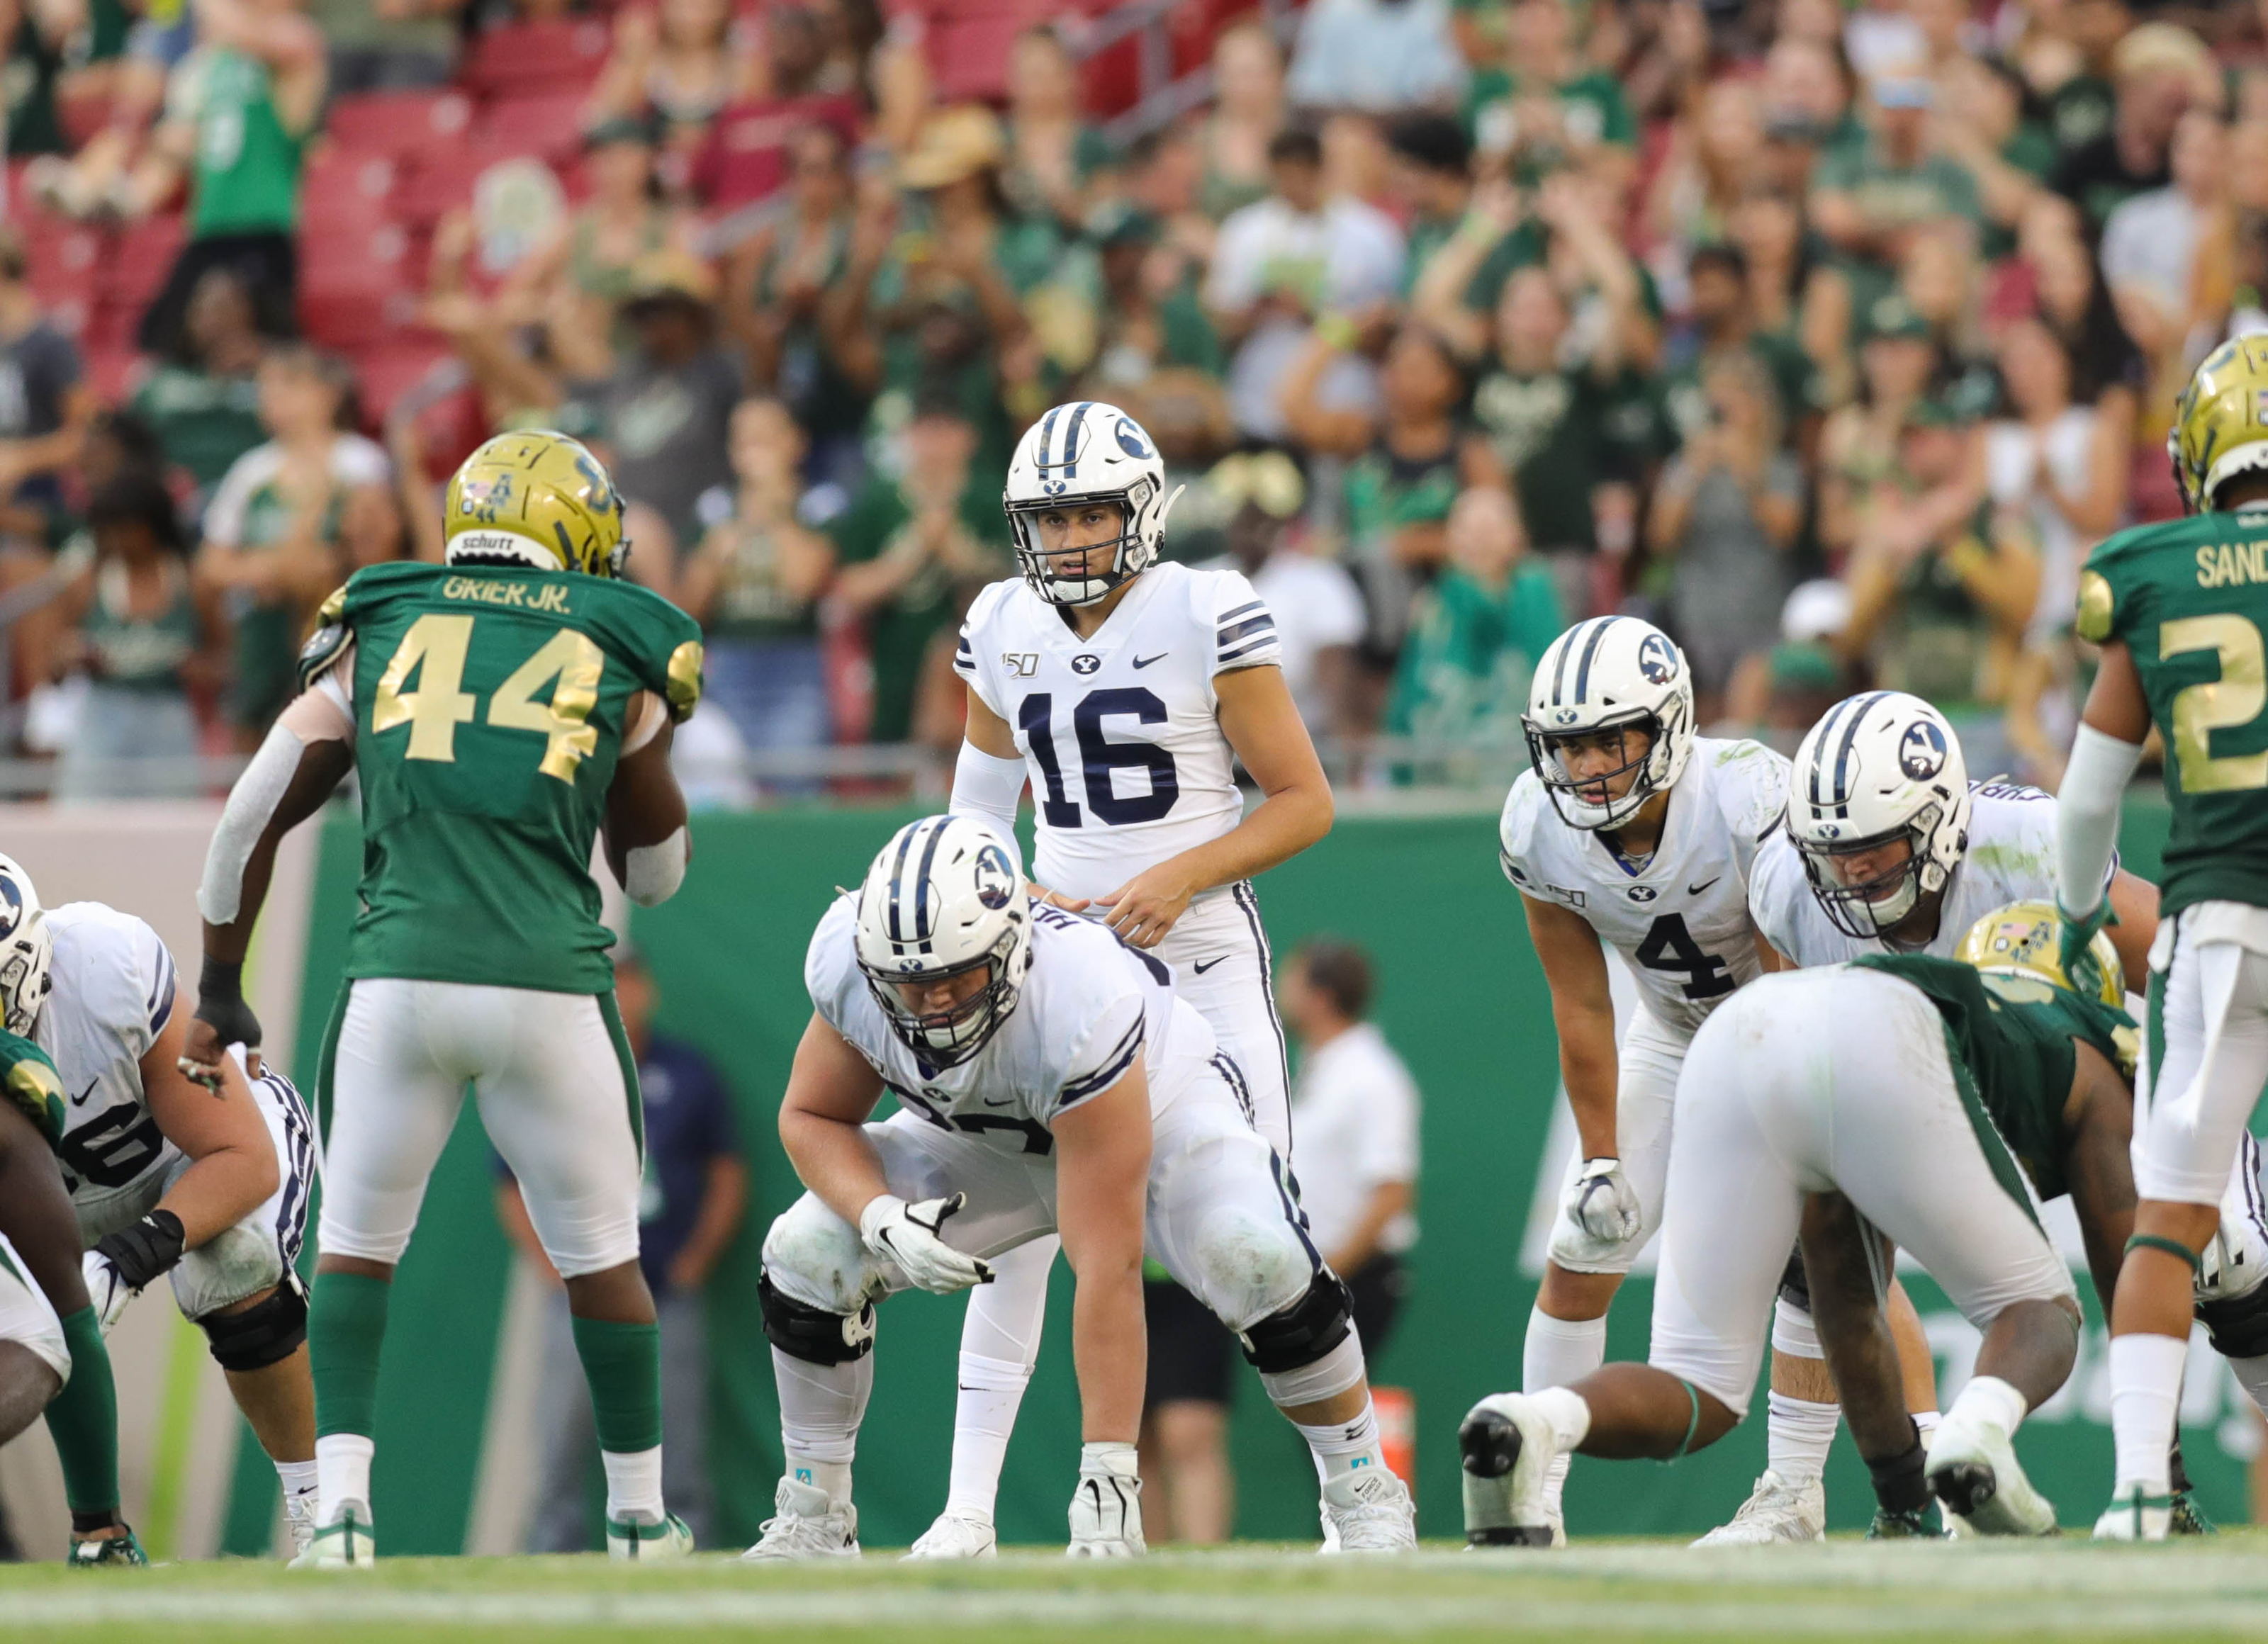 Third-string BYU quarterback Baylor Romney enters the game after Jaren Hall is injured in the fourth quarter against USF, in Tampa, Florida on Saturday, Oct. 12, 2019.